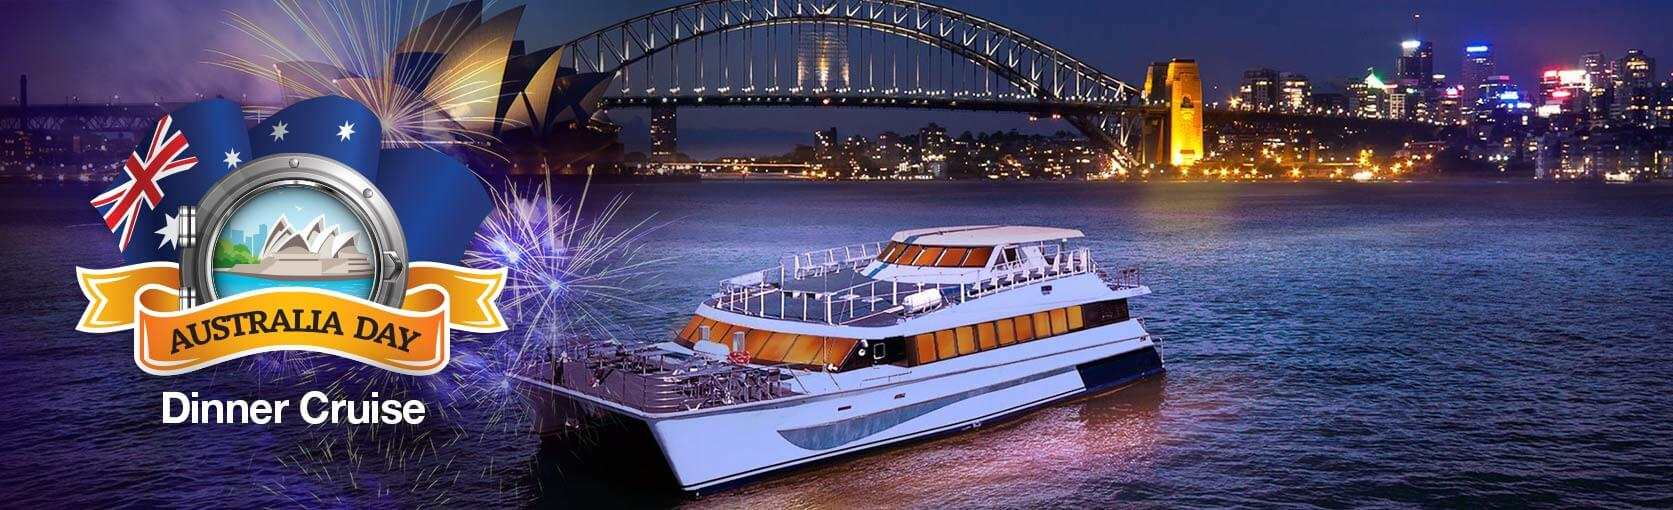 Australia Day Fireworks Buffet Dinner Cruise & Drinks